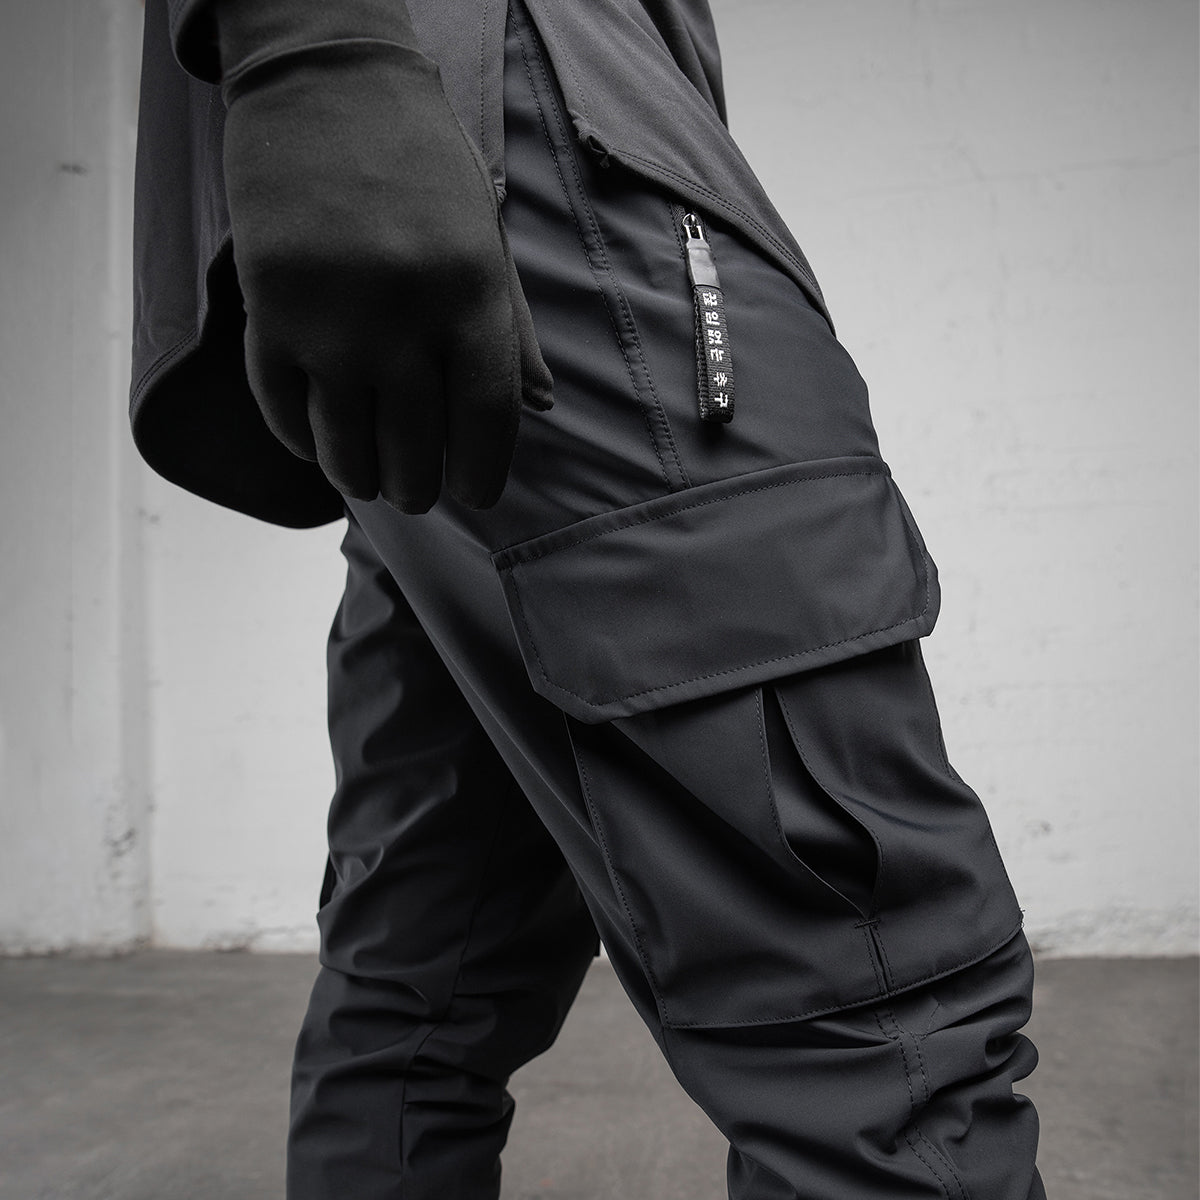 0350. TETRA® Cargo High Rib Jogger - Black